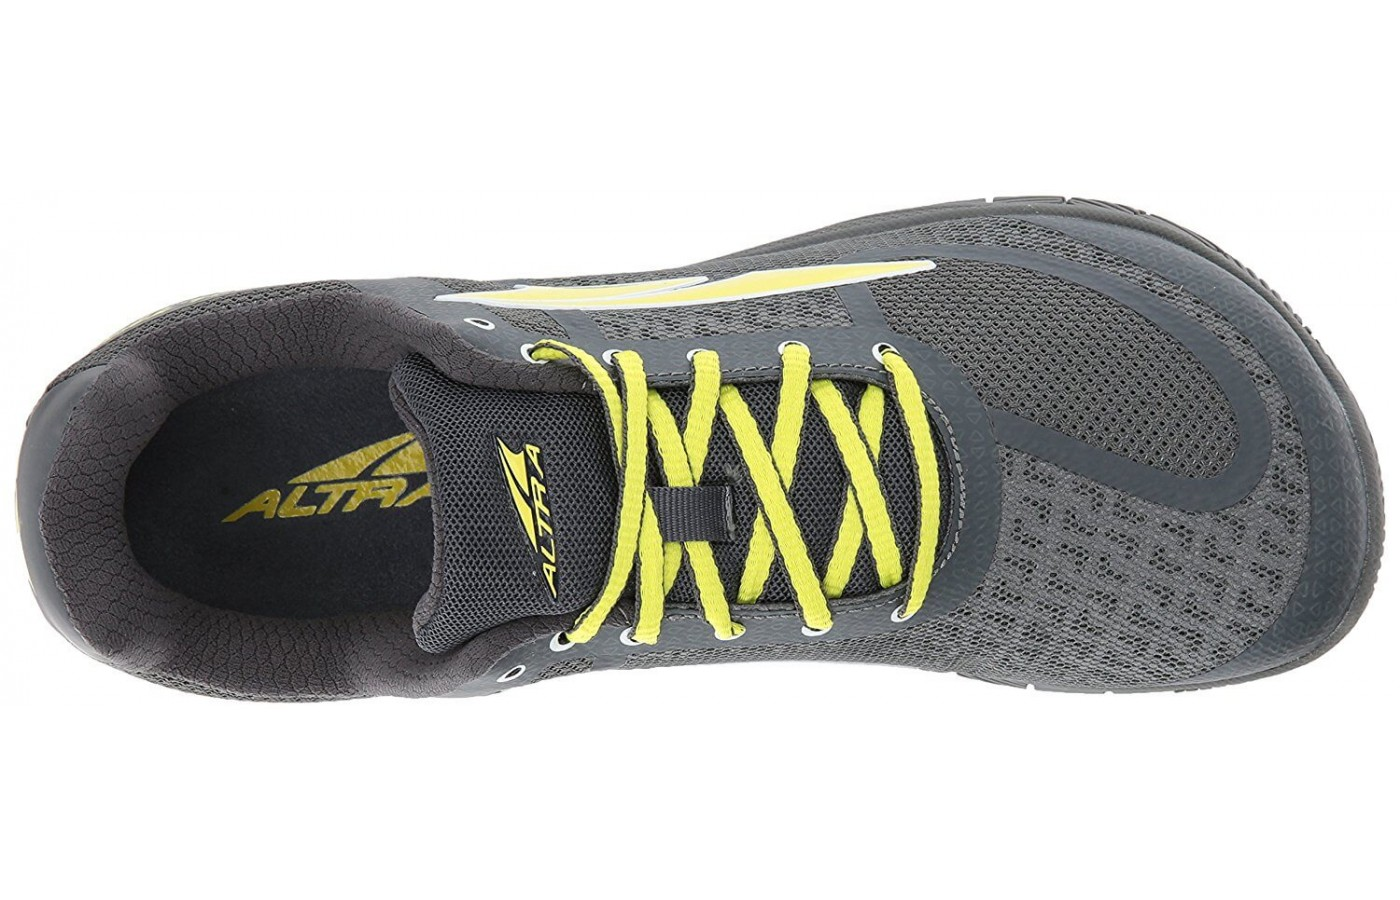 The Altra HIIT XT has an anatomically correct foot box